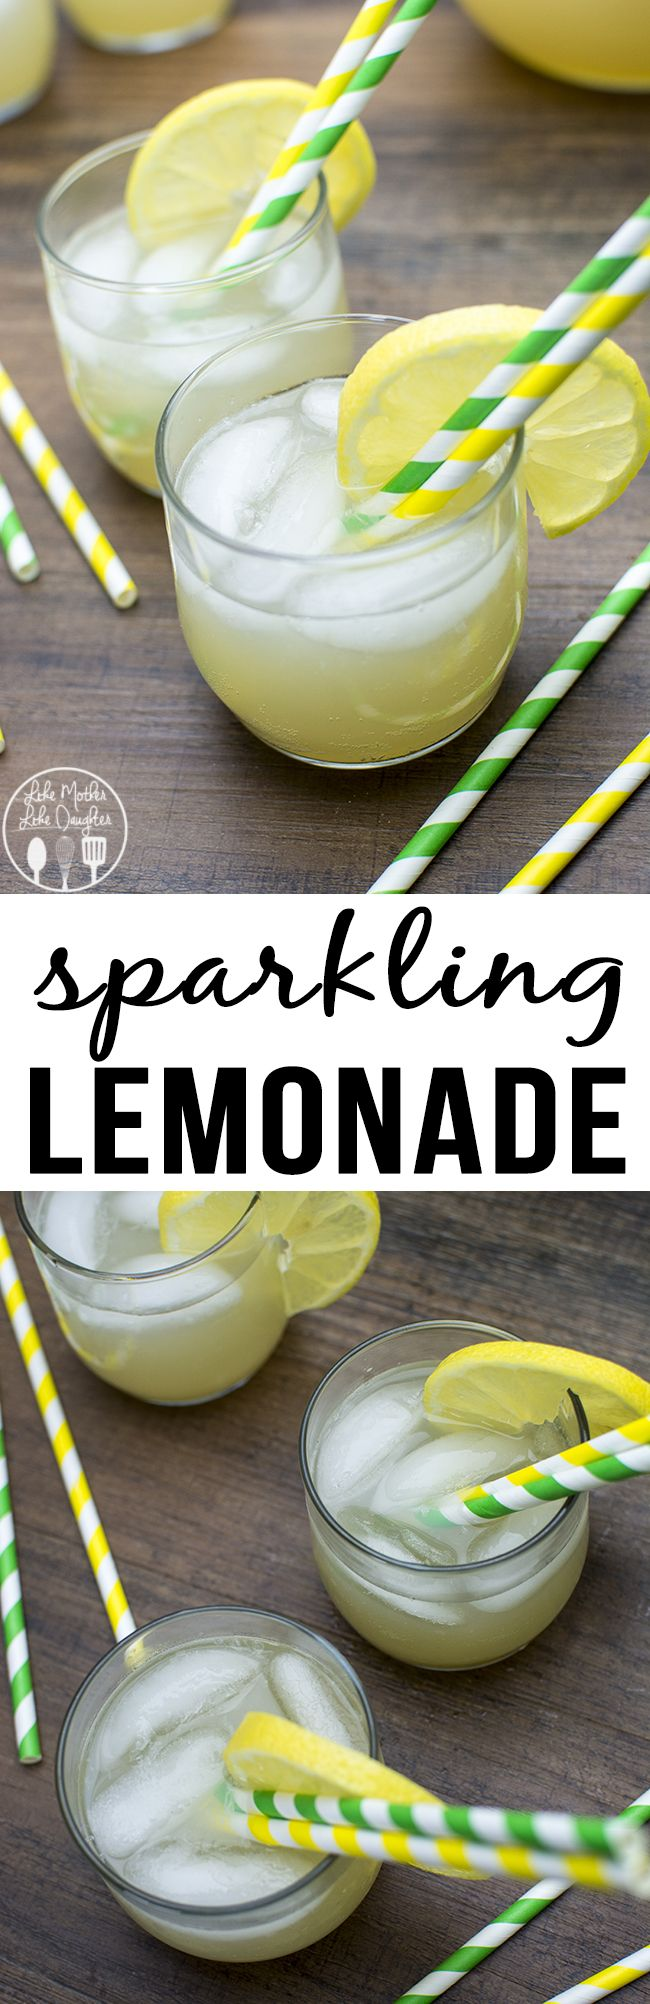 Sparkling Lemonade - This easy to make sparkling lemonade is only 2 ingredients and is the perfect refreshing bubbly drink for any occasion.